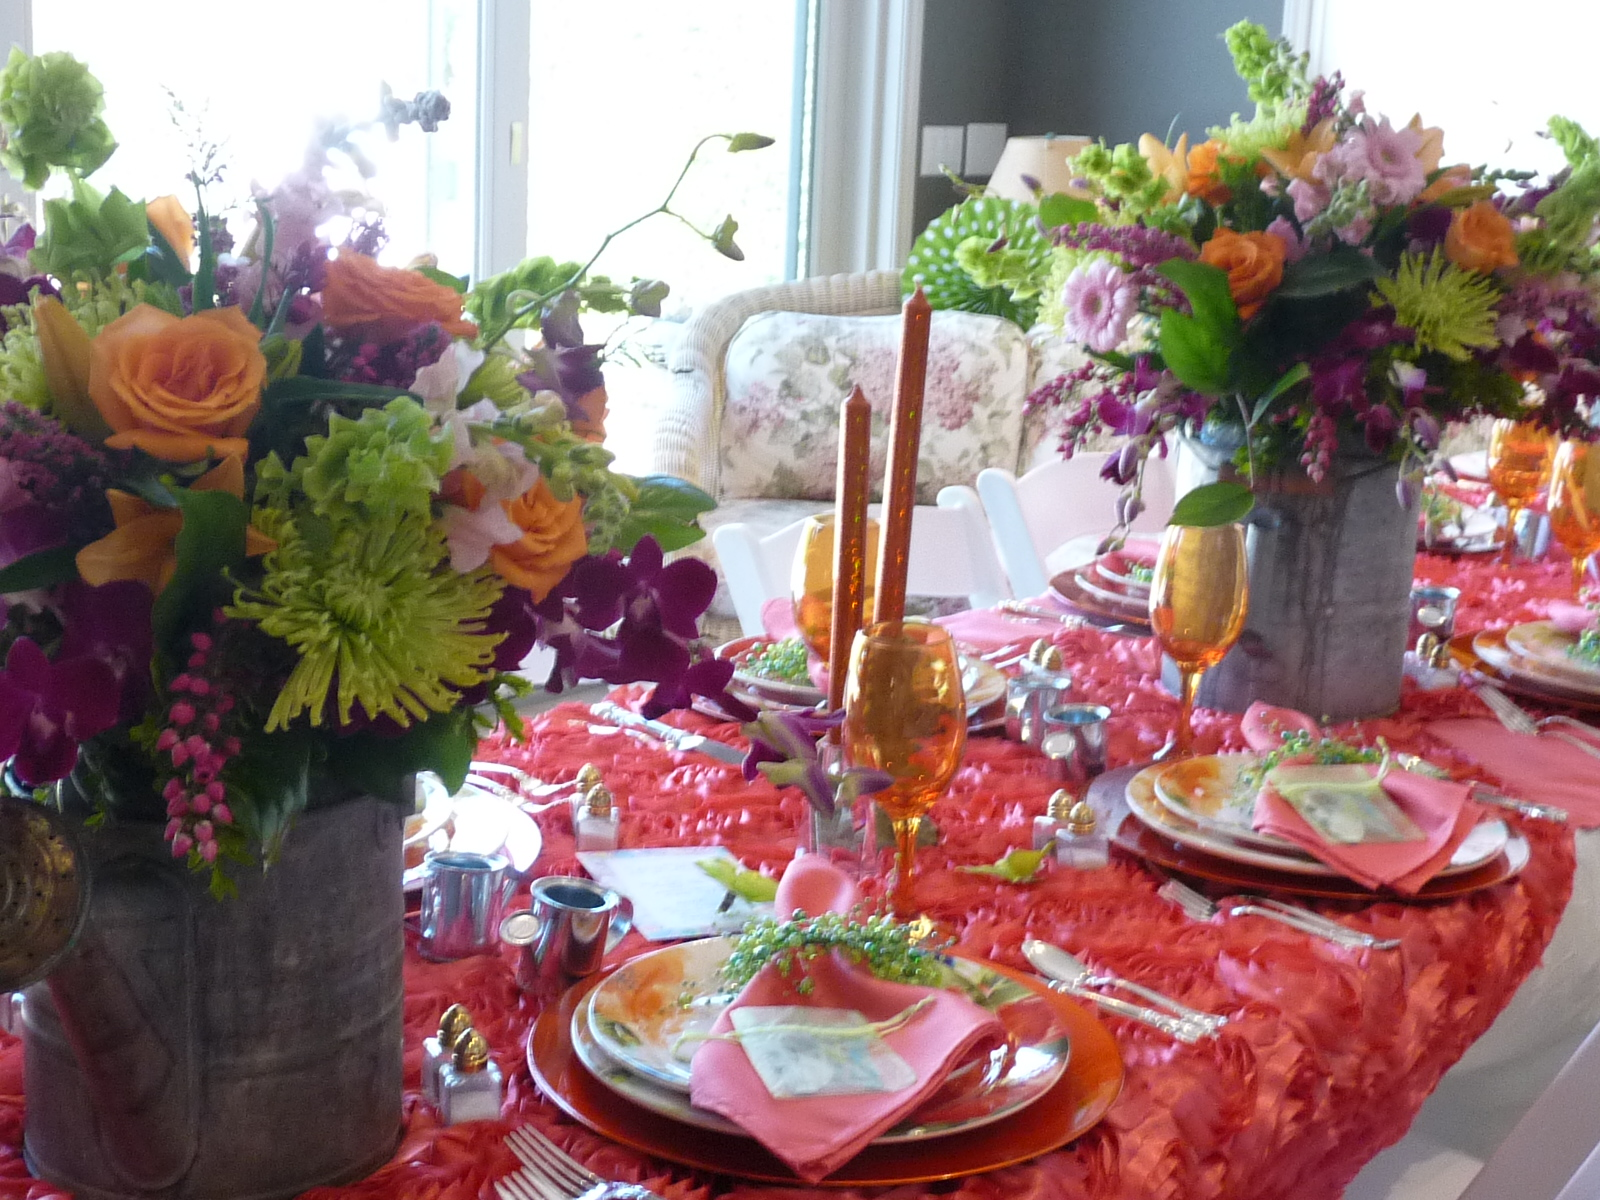 The Guest Must Of Went Head Over Heels For This Stunning Table Setting Great JobEveryoneLove Watering Cans